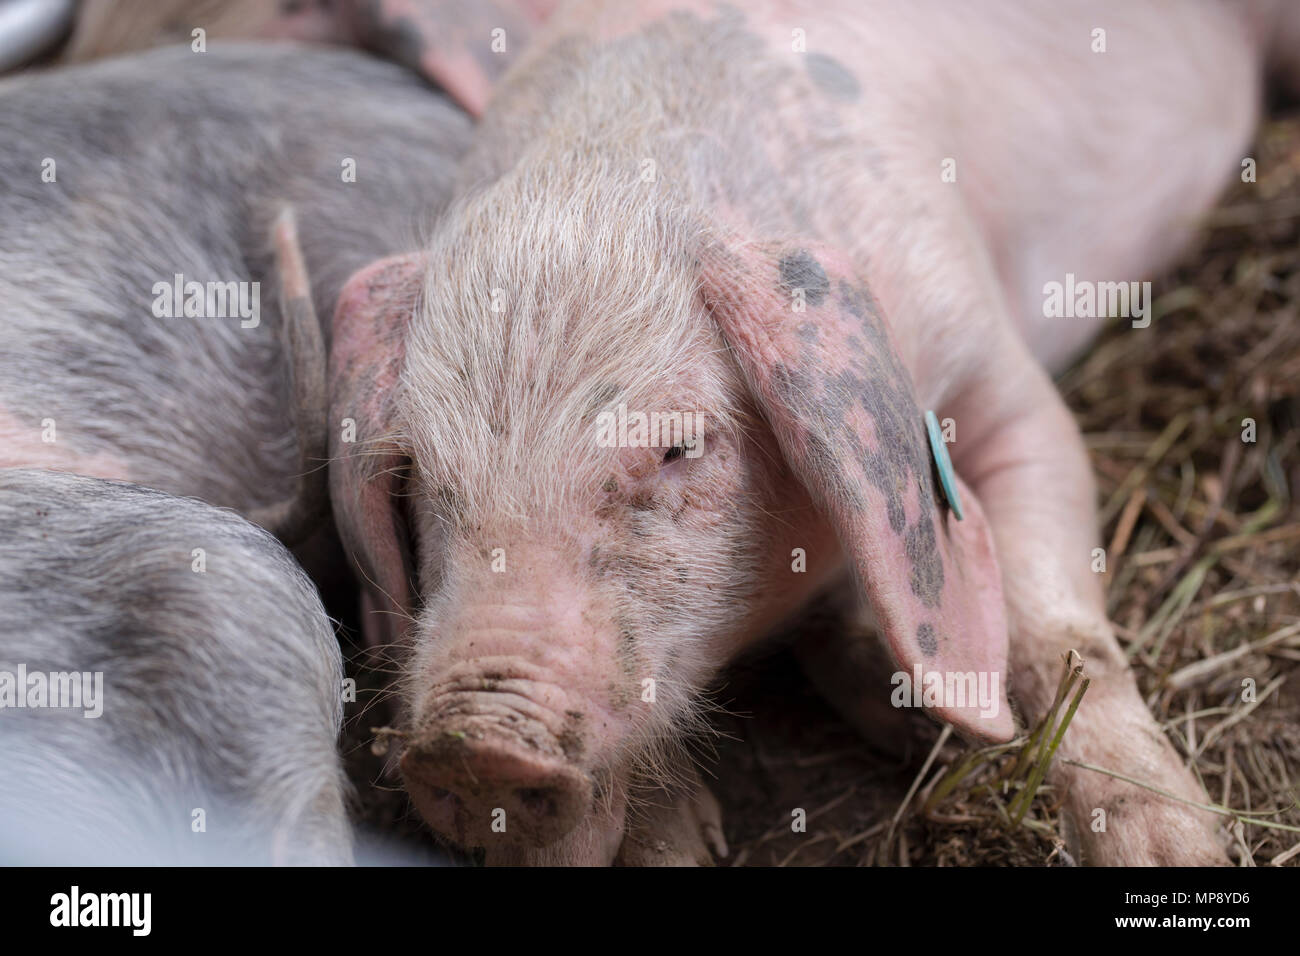 Portrait of a piglet - Stock Image